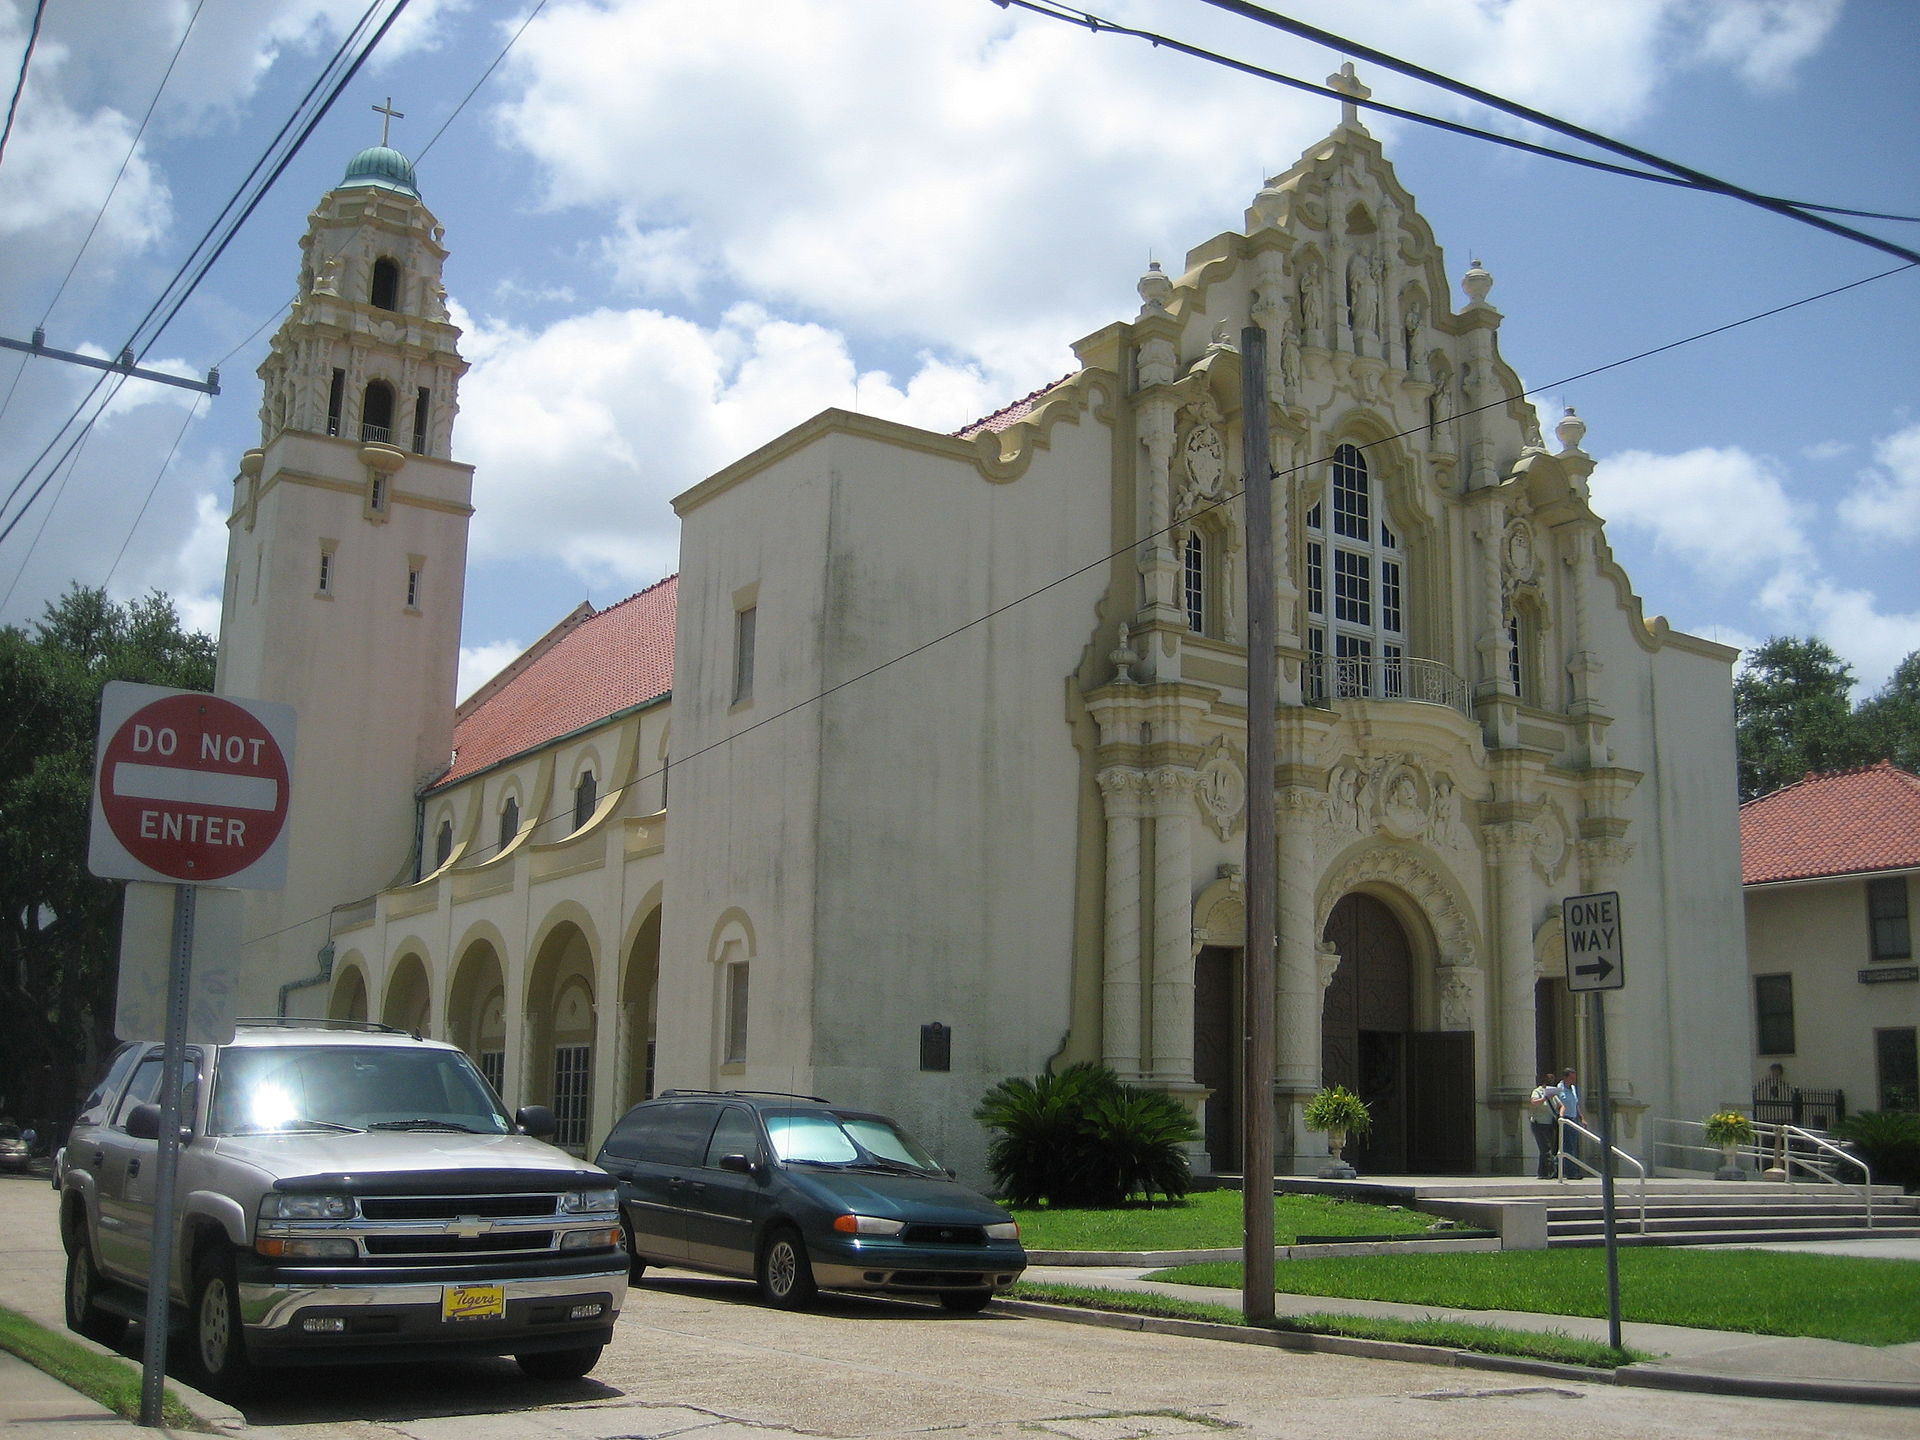 St. Joseph's Catholic Church was built in 1926 and is one of the parish's most prominent landmarks.